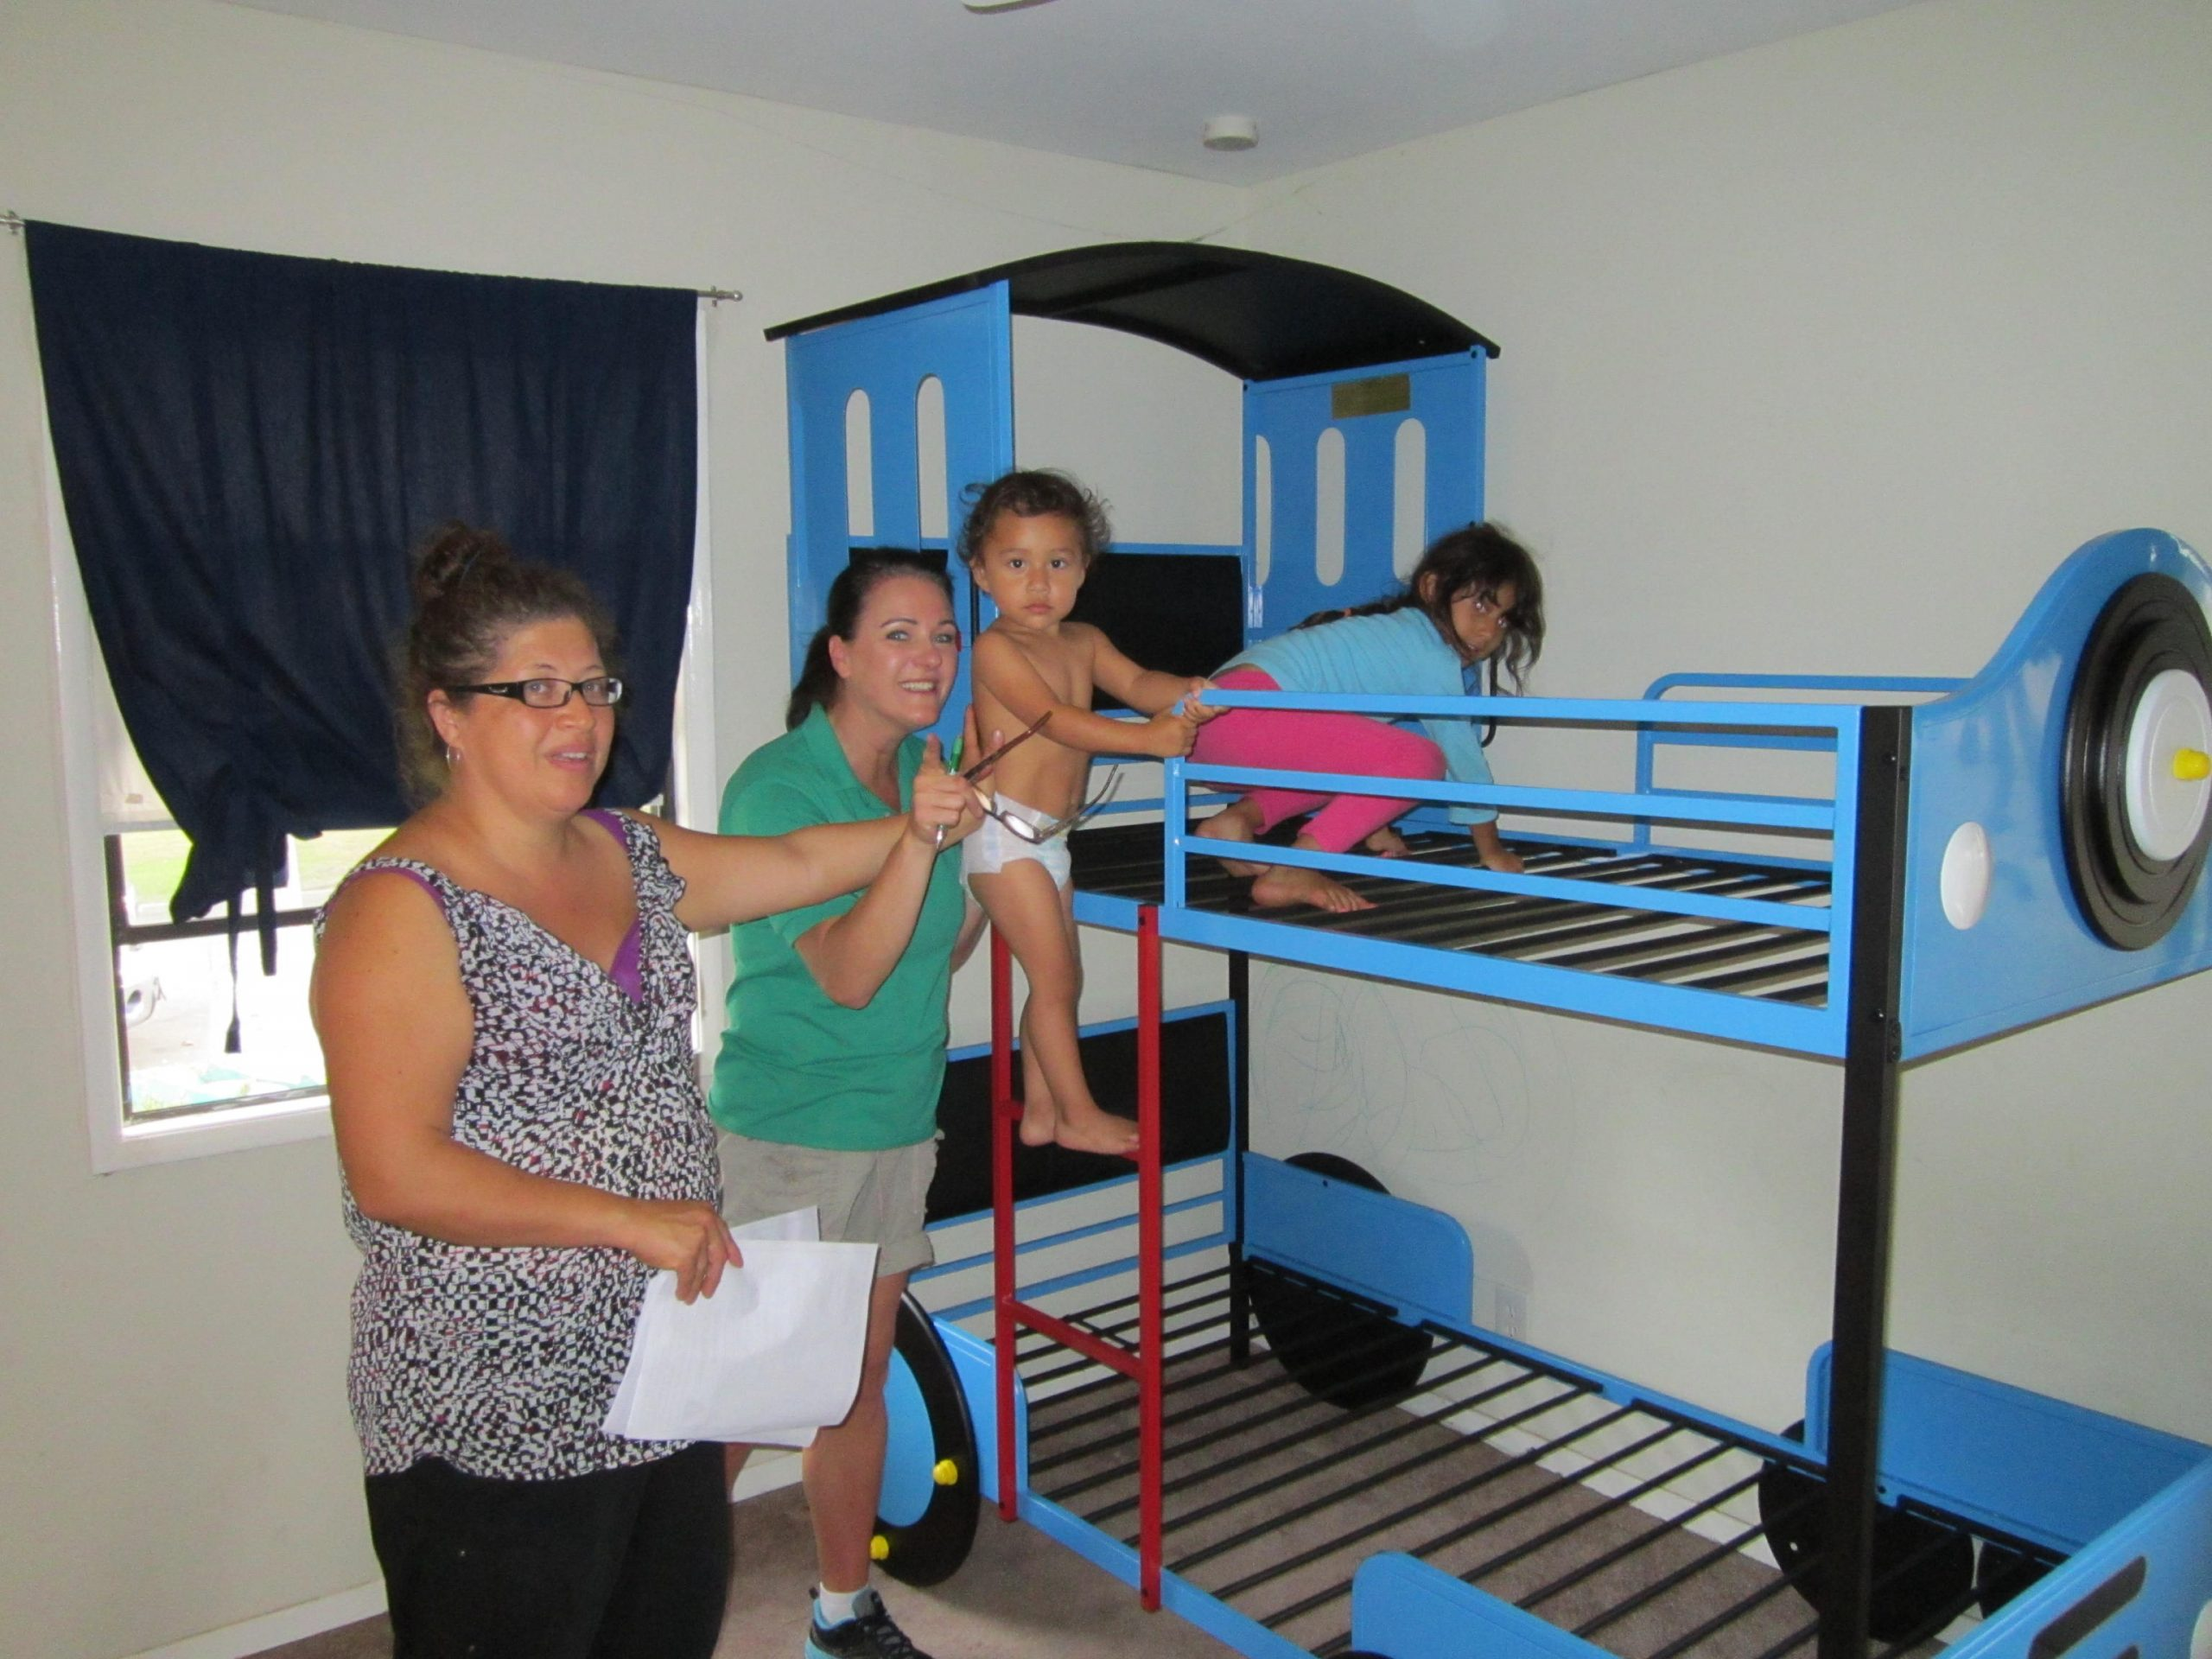 Thomas the Train Express Bunk Bed Delivery and Install